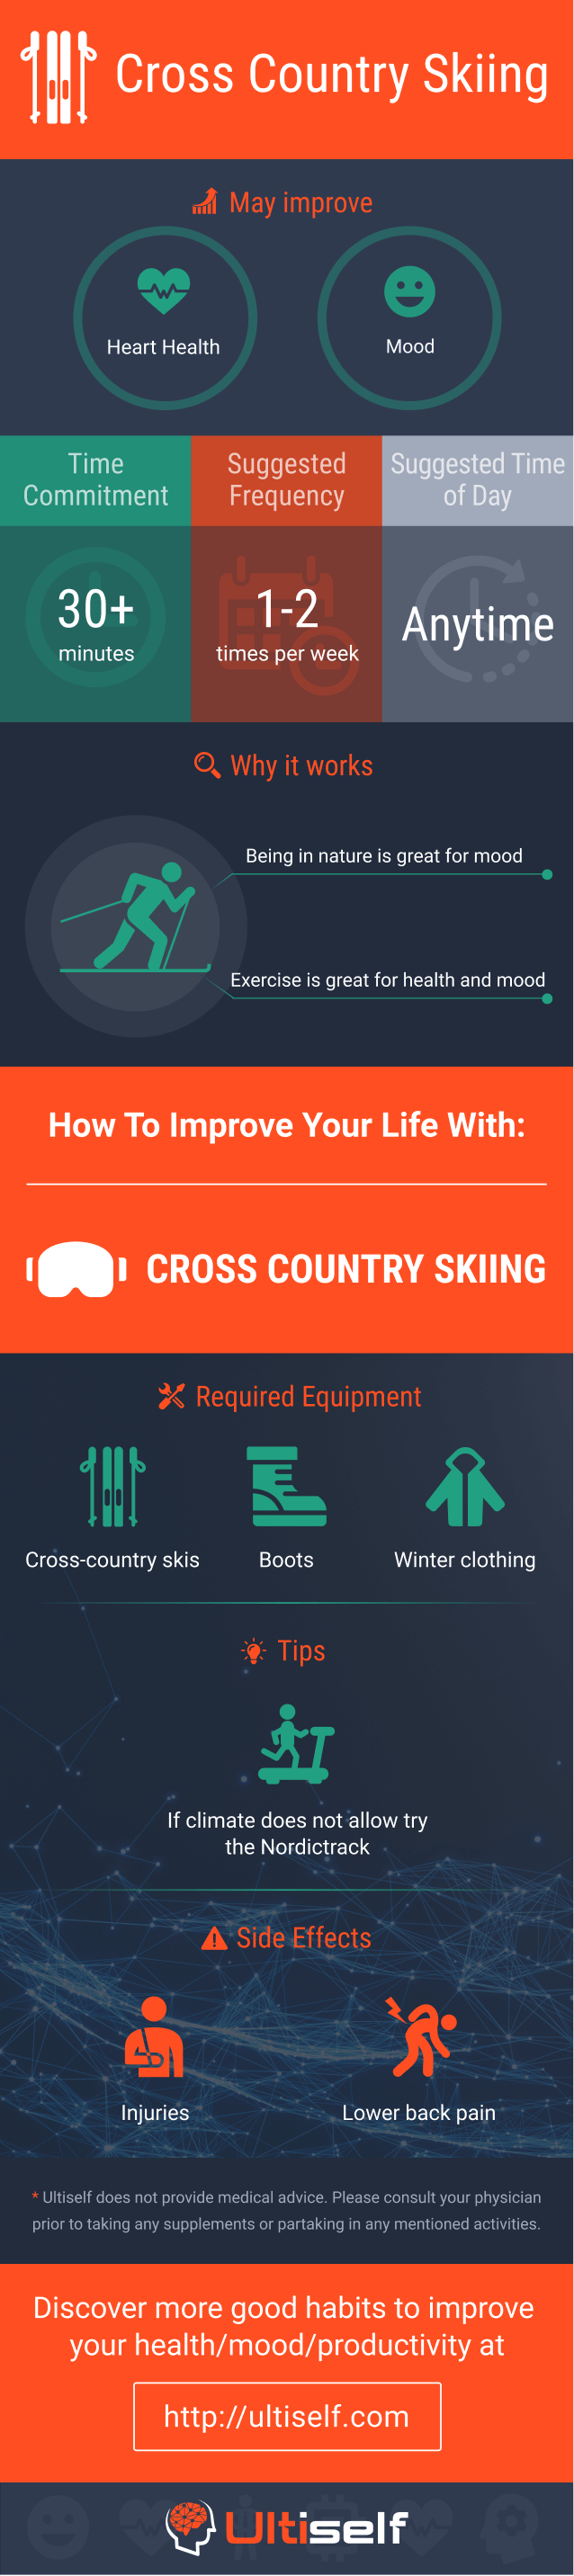 Cross country skiing infographic